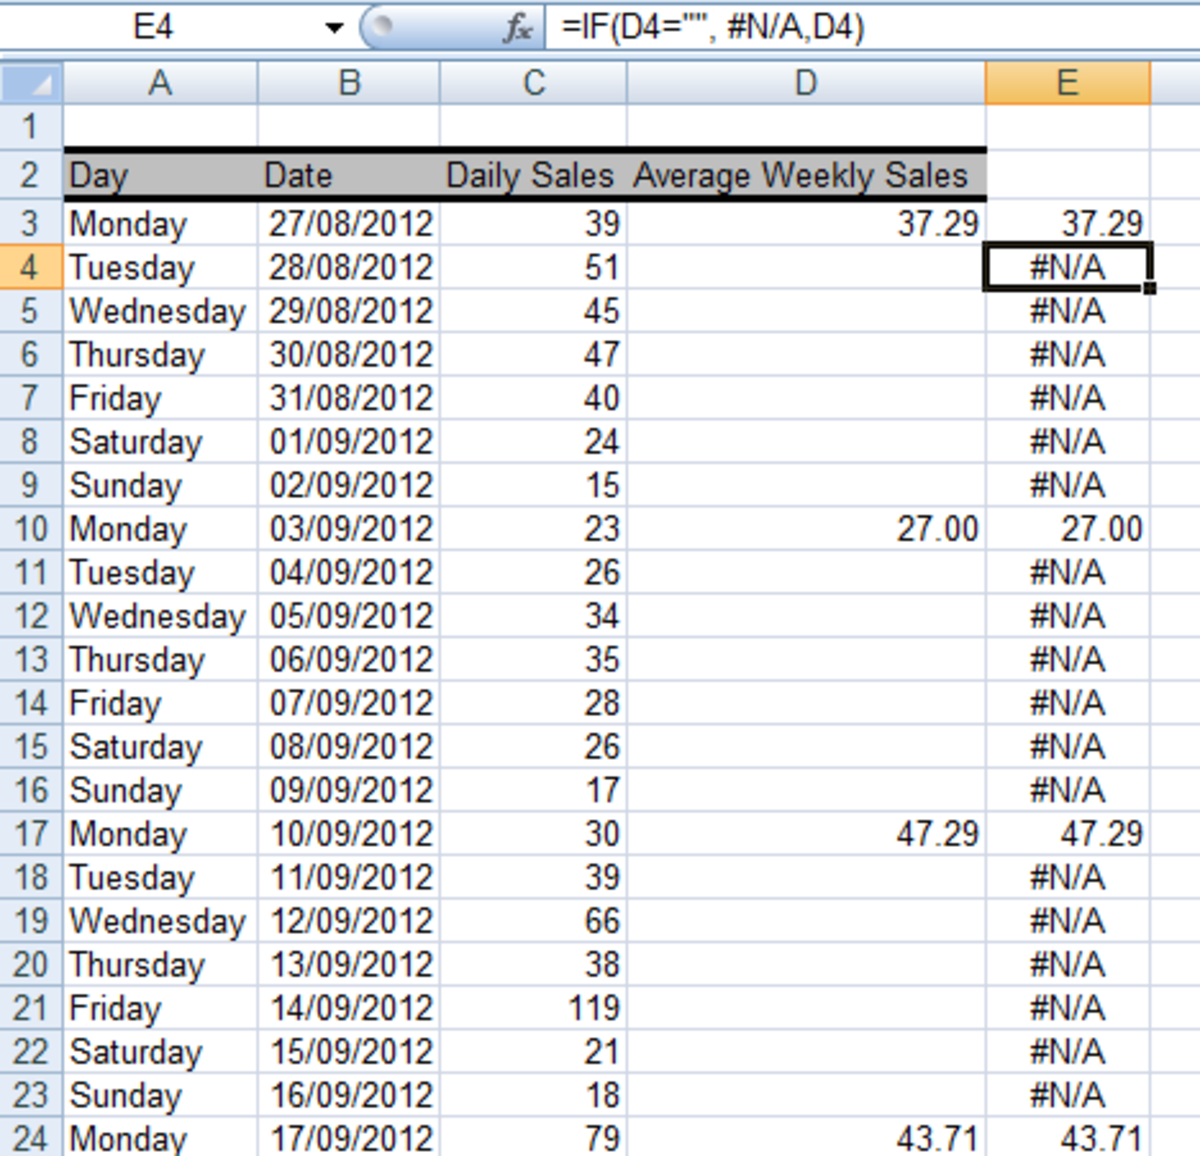 Ediblewildsus  Pleasing How To Get Excel  And  To Ignore Empty Cells In A Chart Or  With Licious Using The If Function In A Formula To Convert Empty Cells To Na With Comely Planner Template Excel Also Excel  Trendline In Addition Excel Lock File And Excel Combine Files As Well As Excel Chart Column Width Additionally Excel  Product Key From Turbofuturecom With Ediblewildsus  Licious How To Get Excel  And  To Ignore Empty Cells In A Chart Or  With Comely Using The If Function In A Formula To Convert Empty Cells To Na And Pleasing Planner Template Excel Also Excel  Trendline In Addition Excel Lock File From Turbofuturecom